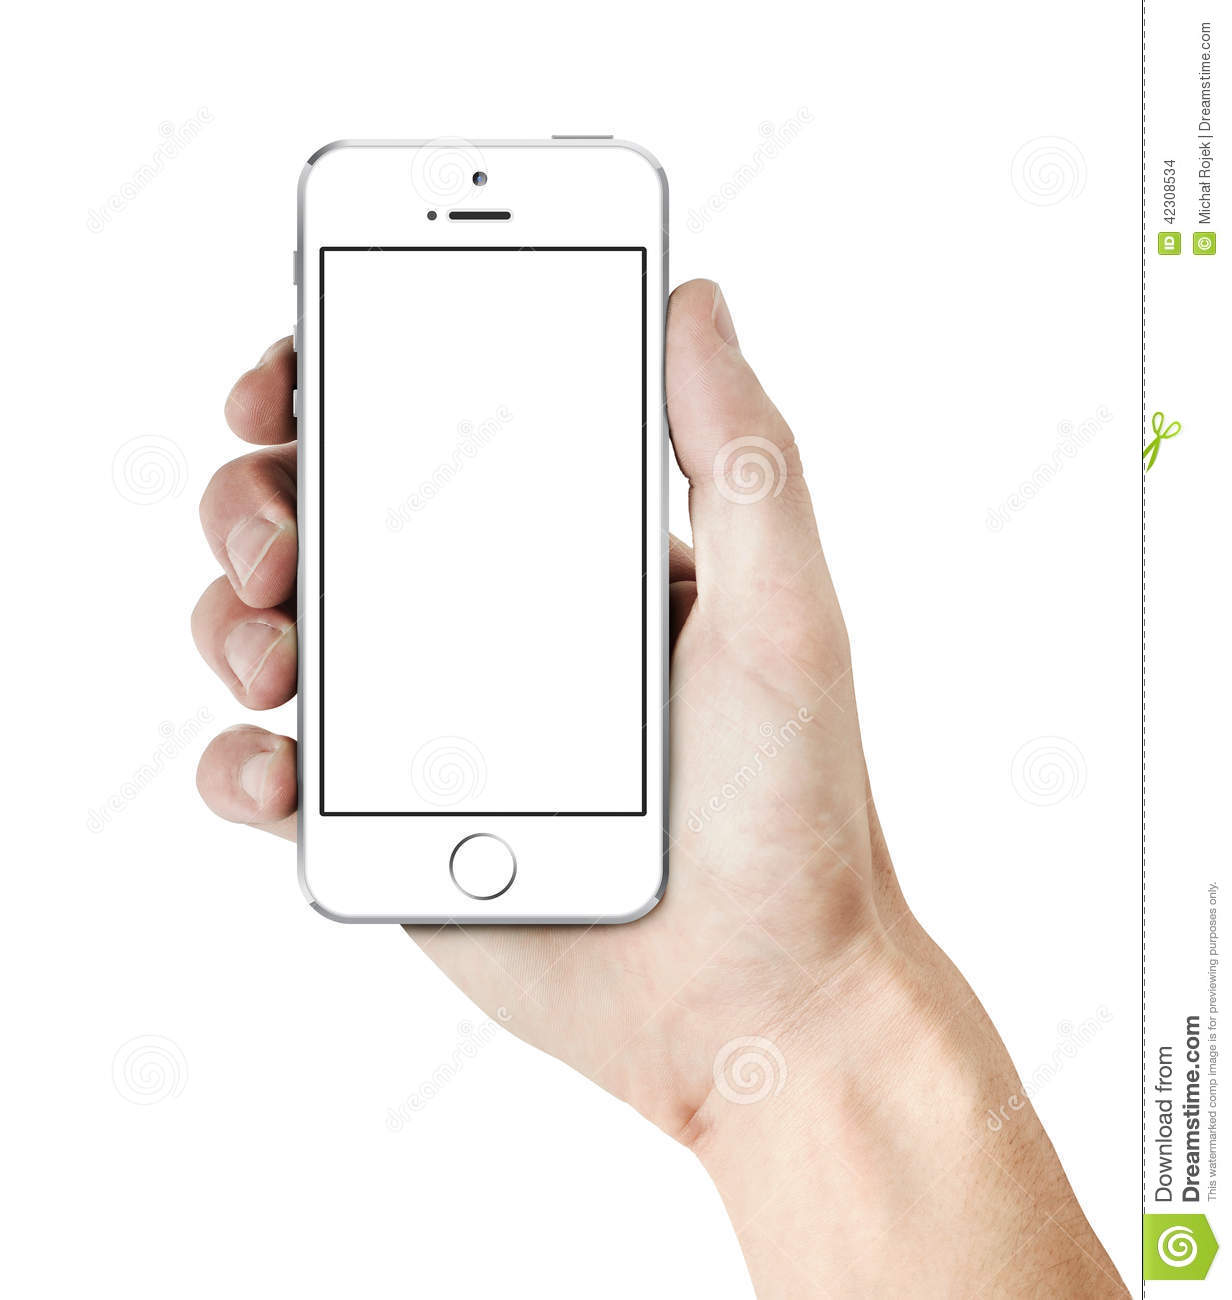 white iphone 5s in hand editorial stock image image of